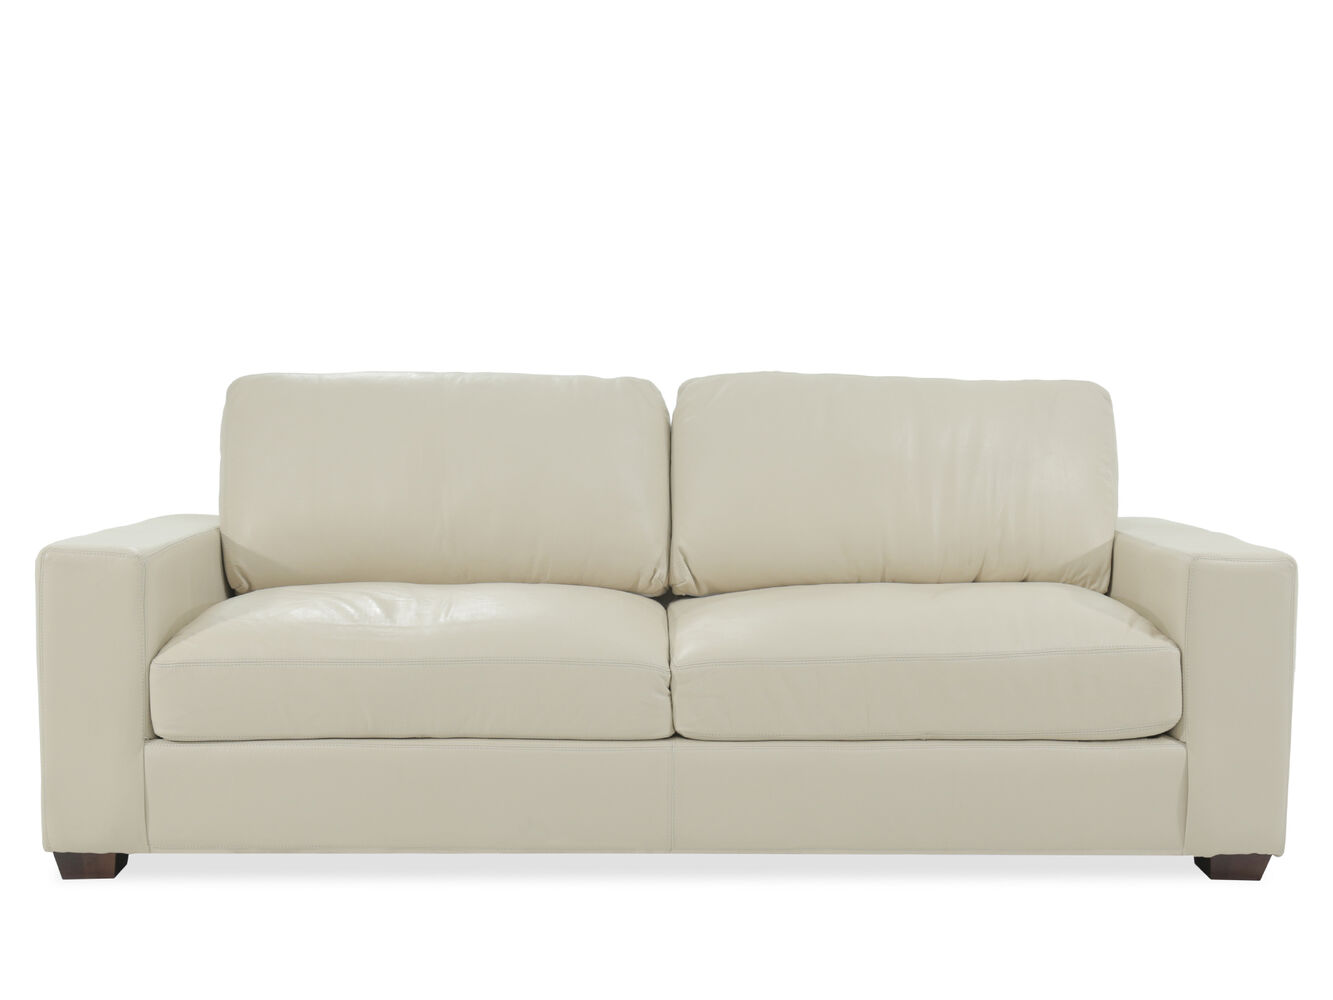 Casual 99 leather sofa in cream mathis brothers furniture for Mathis brothers living room furniture